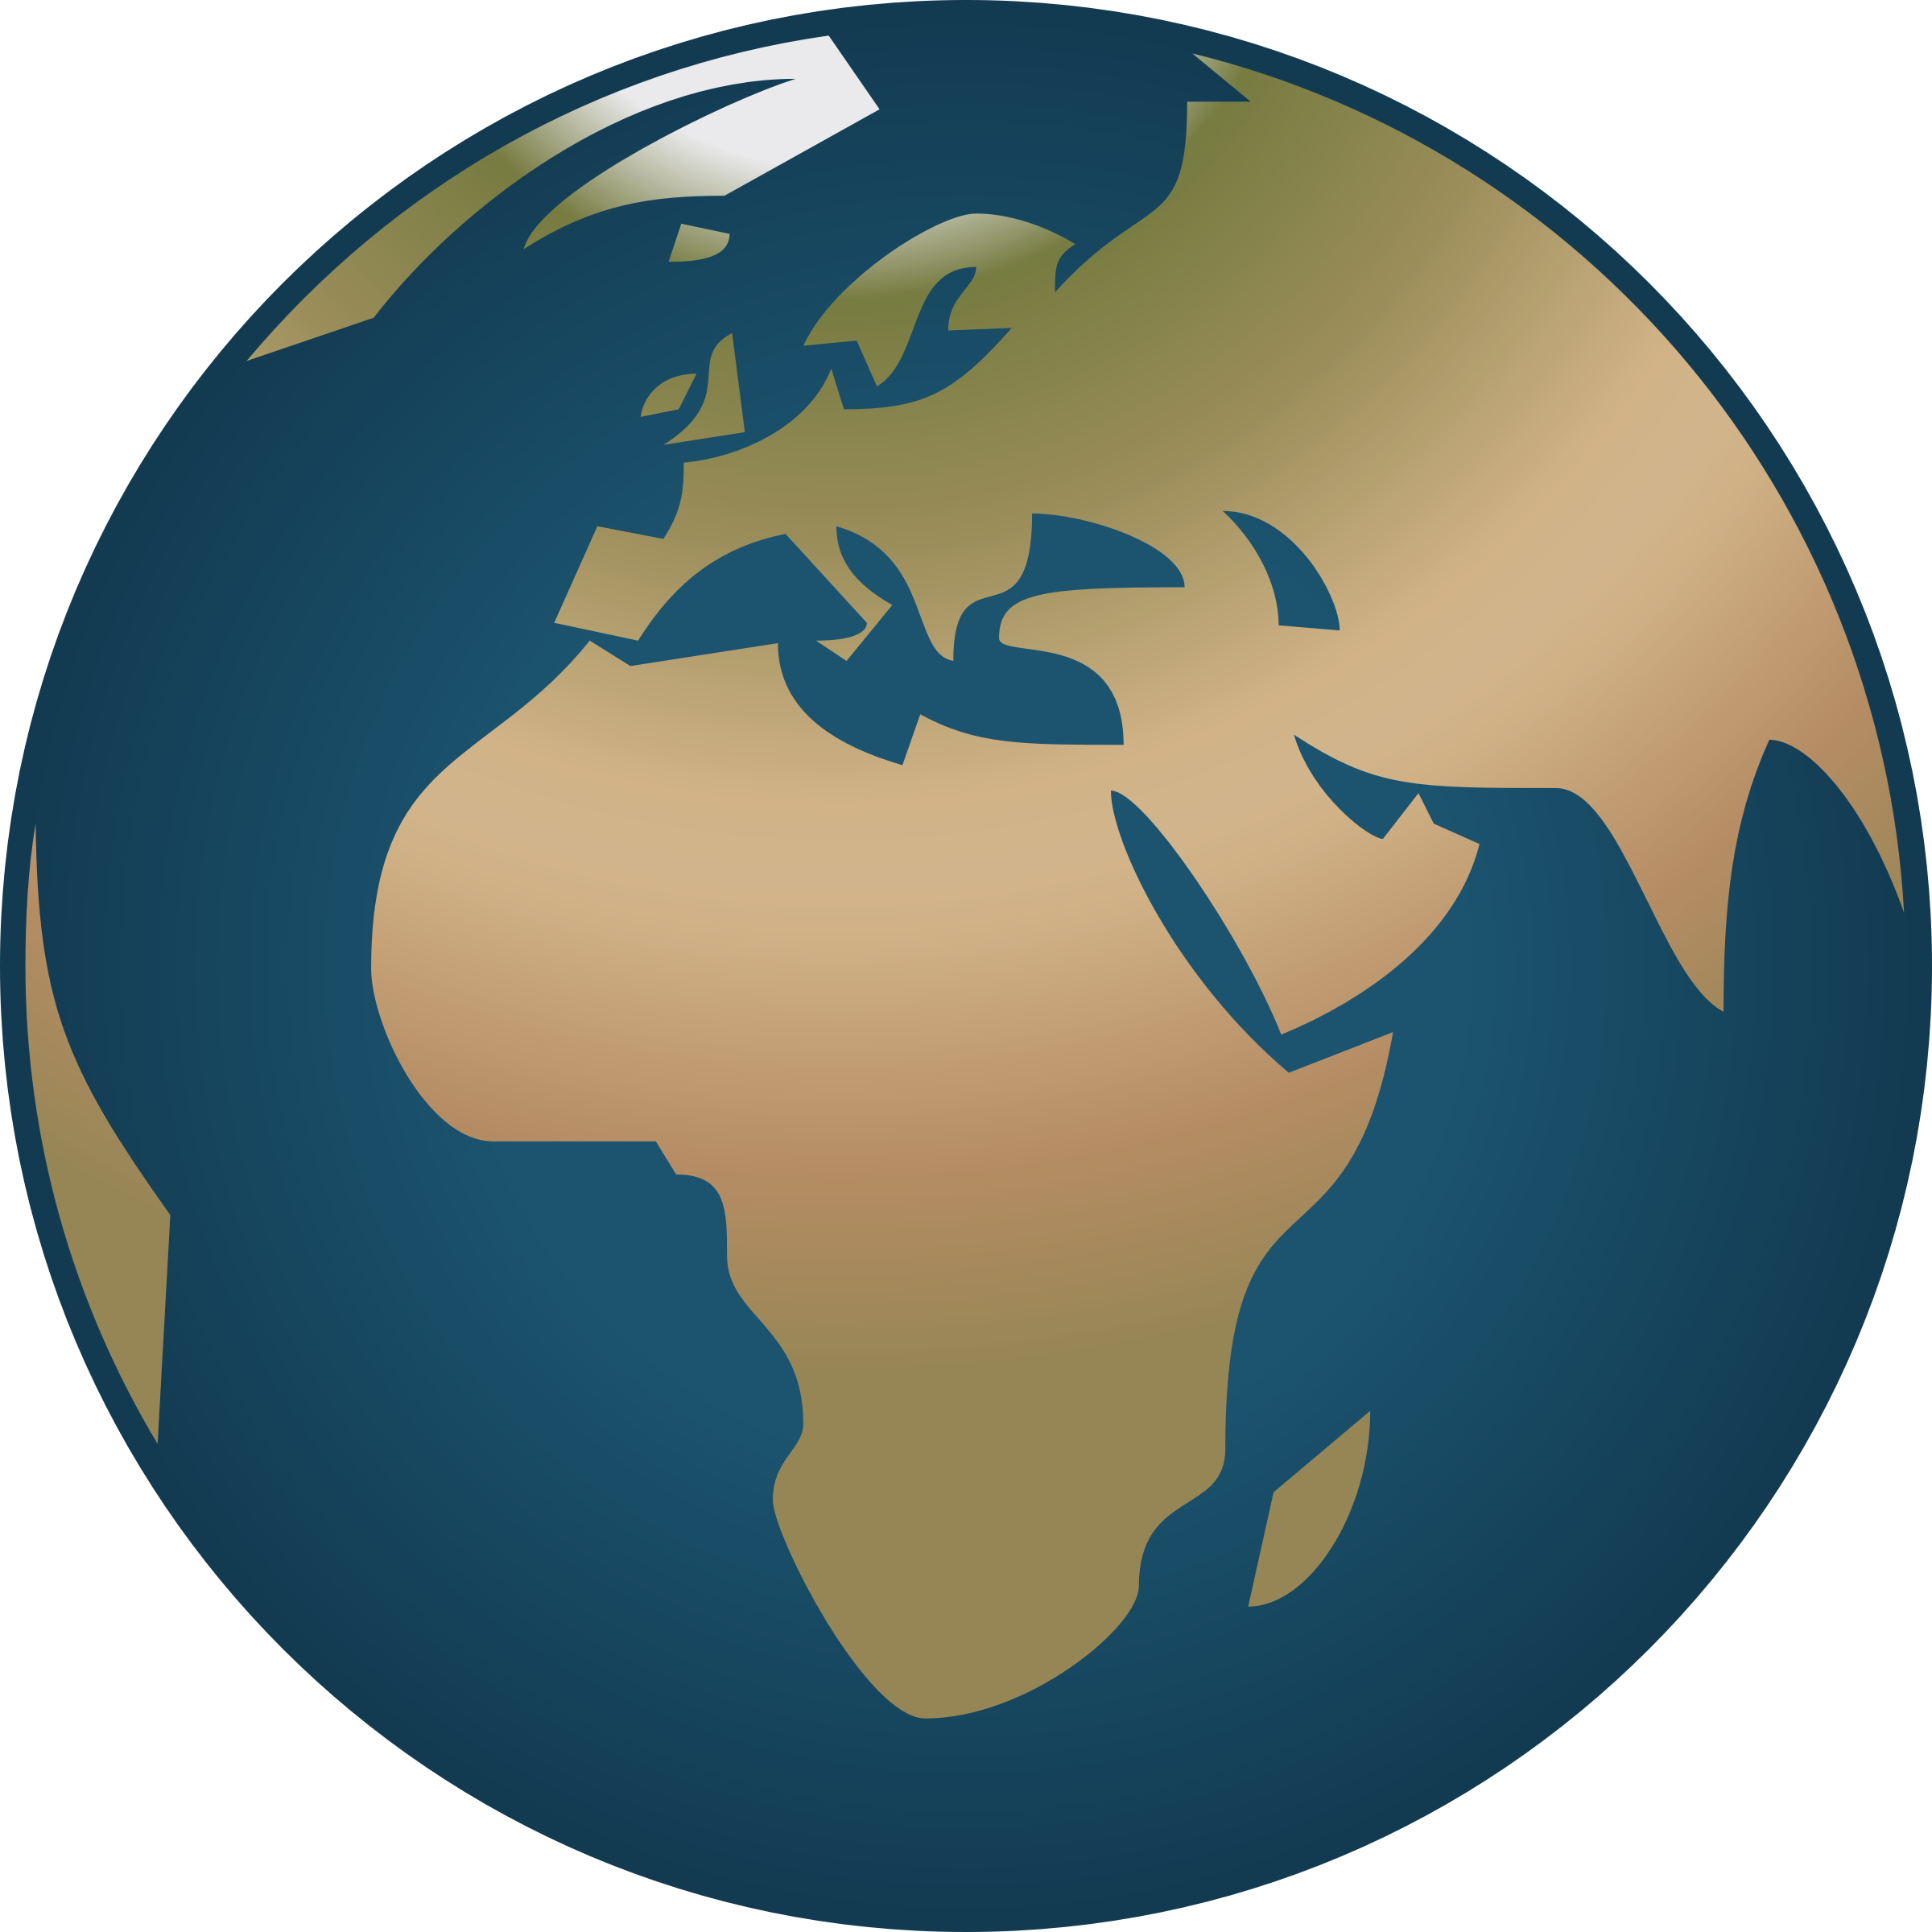 Simple facing europe and. Globe clipart planet earth